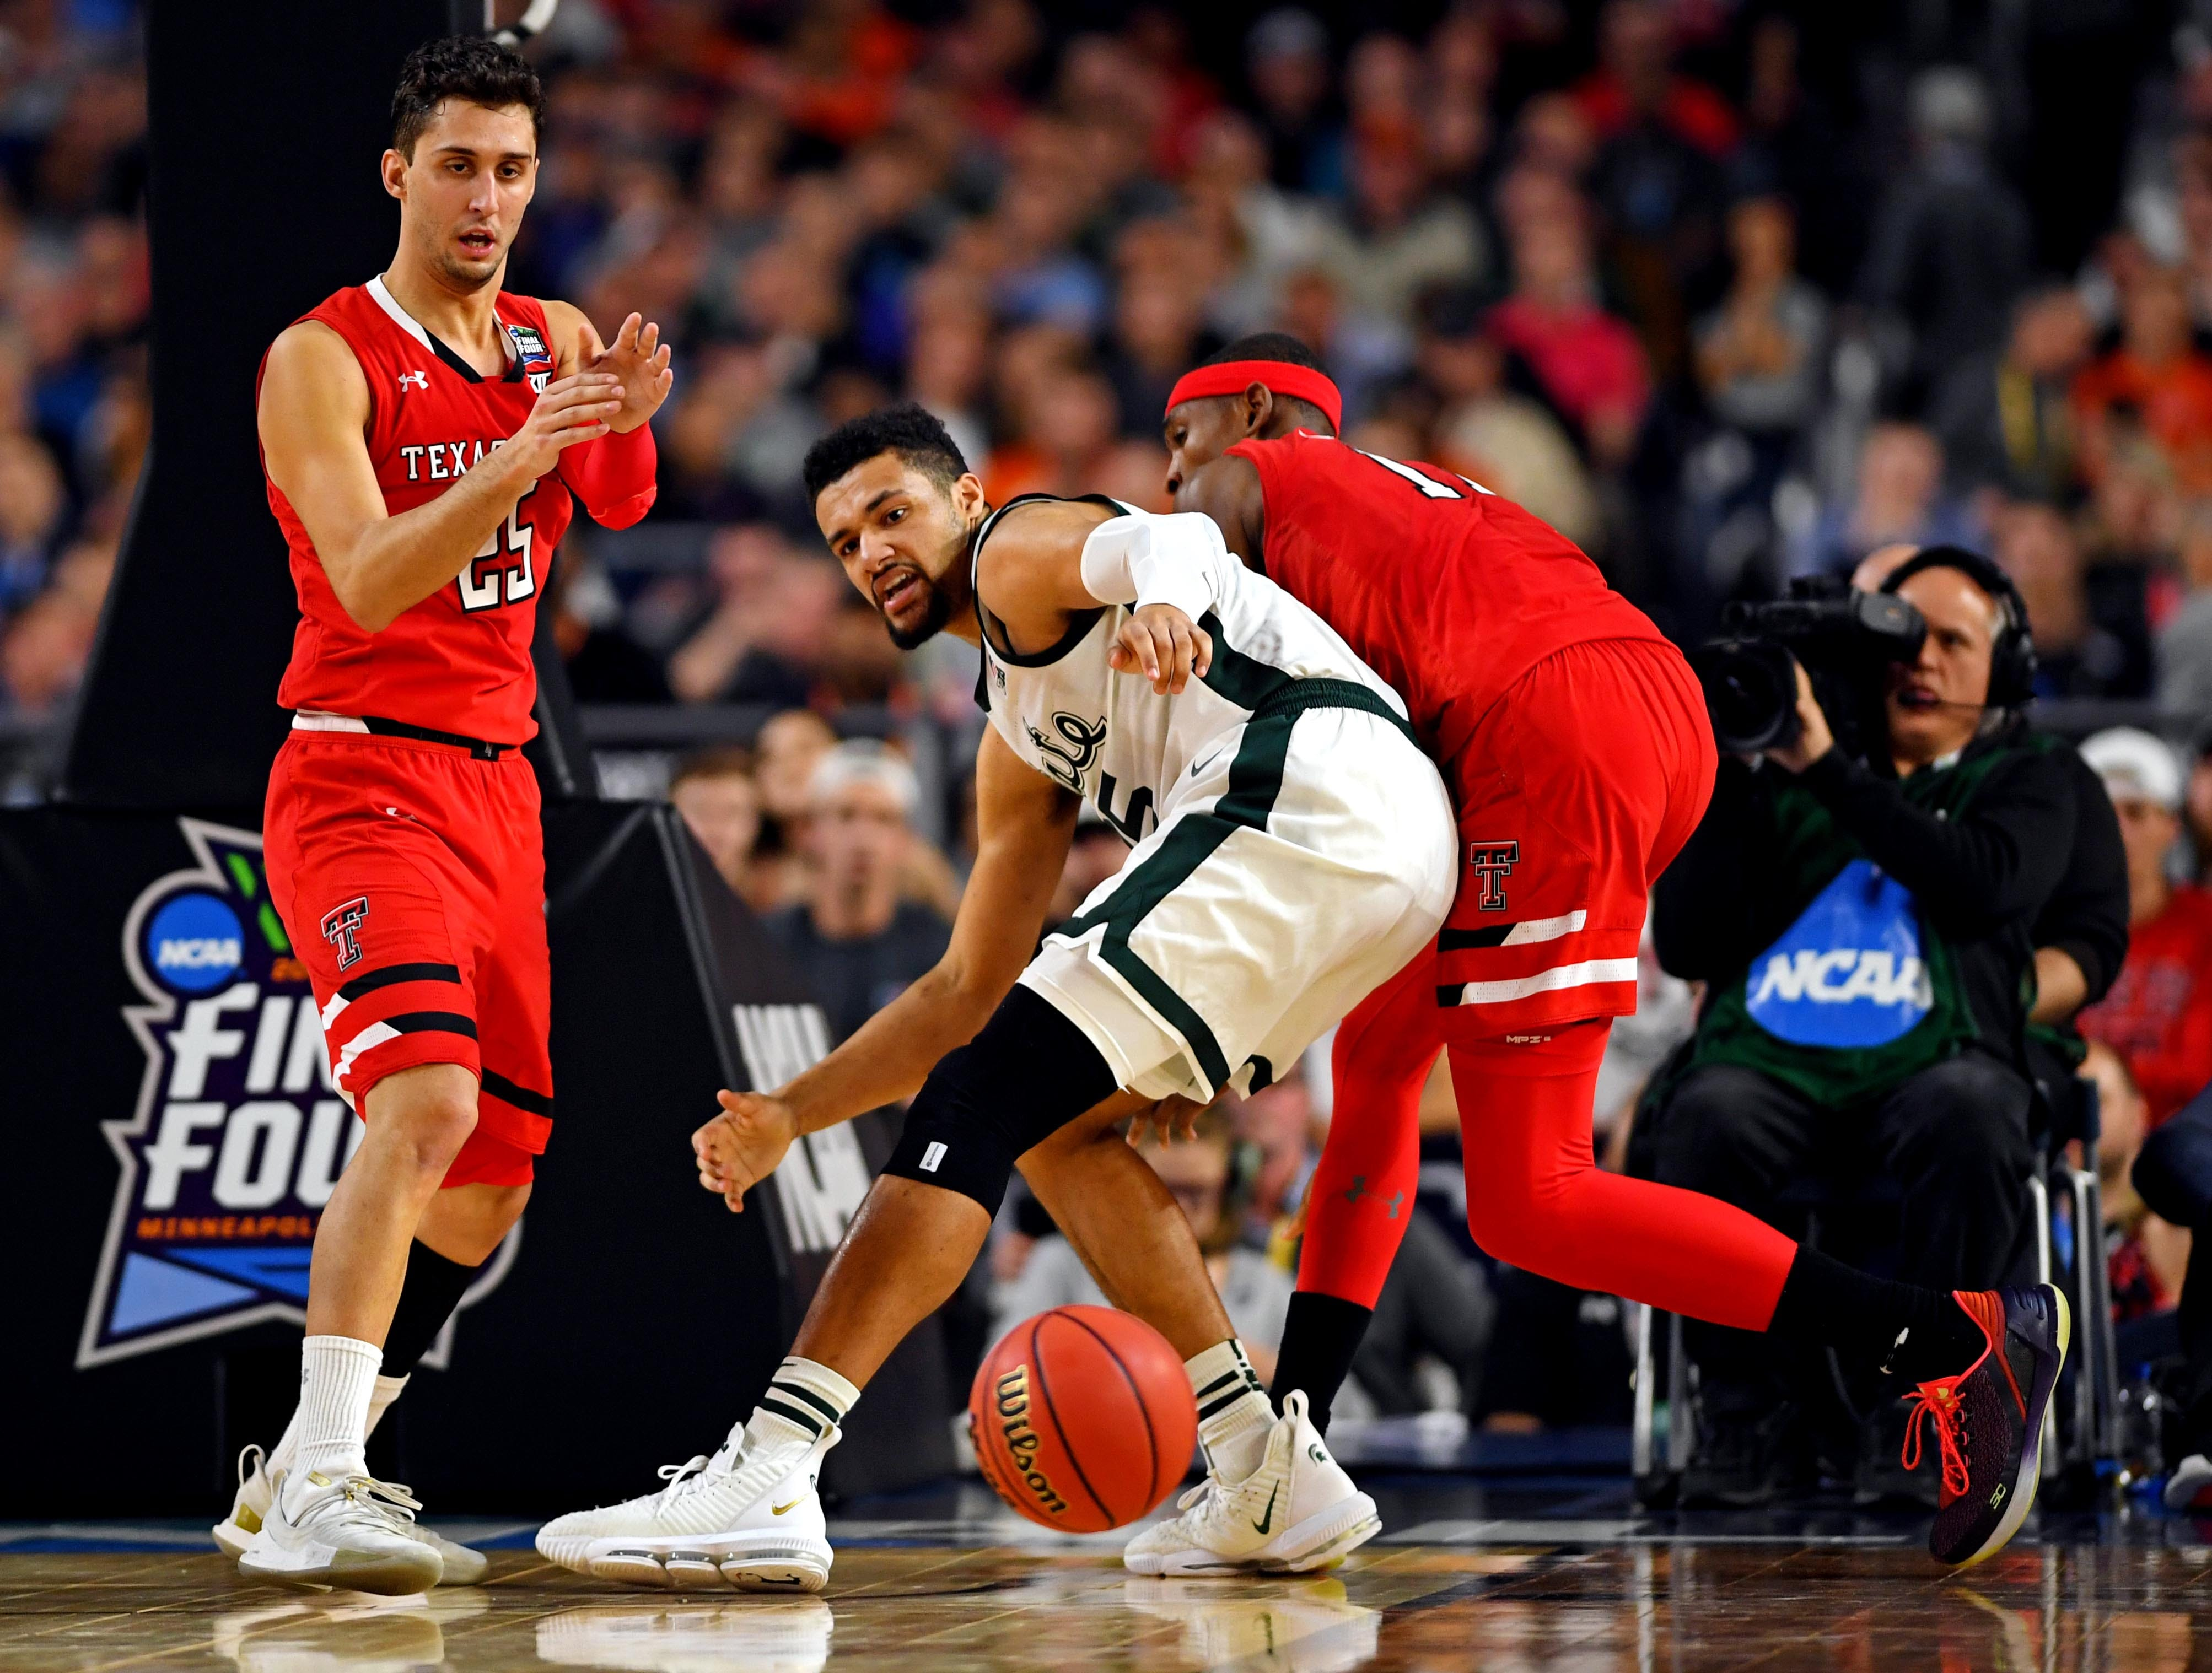 Apr 6, 2019; Minneapolis, MN, USA; Michigan State Spartans forward Kenny Goins (25) goes for a loose ball against Texas Tech Red Raiders guard Davide Moretti (25) and Texas Tech Red Raiders forward Tariq Owens (11) in the semifinals of the 2019 men's Final Four at US Bank Stadium. Mandatory Credit: Bob Donnan-USA TODAY Sports